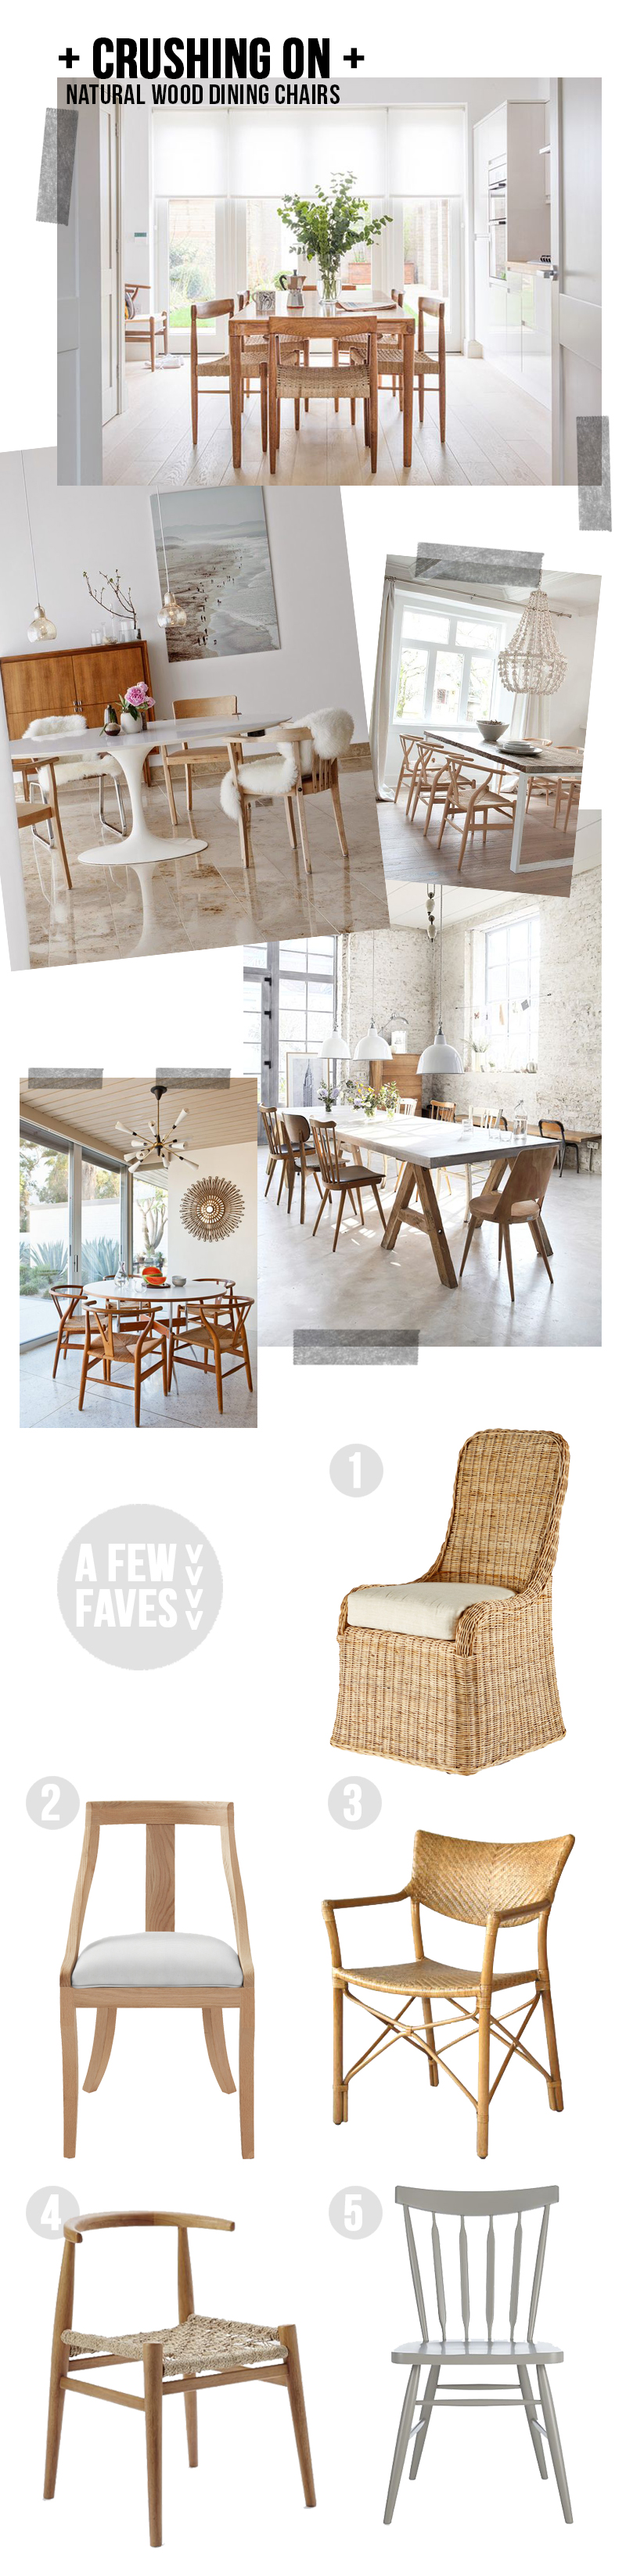 Amber Interiors - Crushing on - Natural Dining Chairs